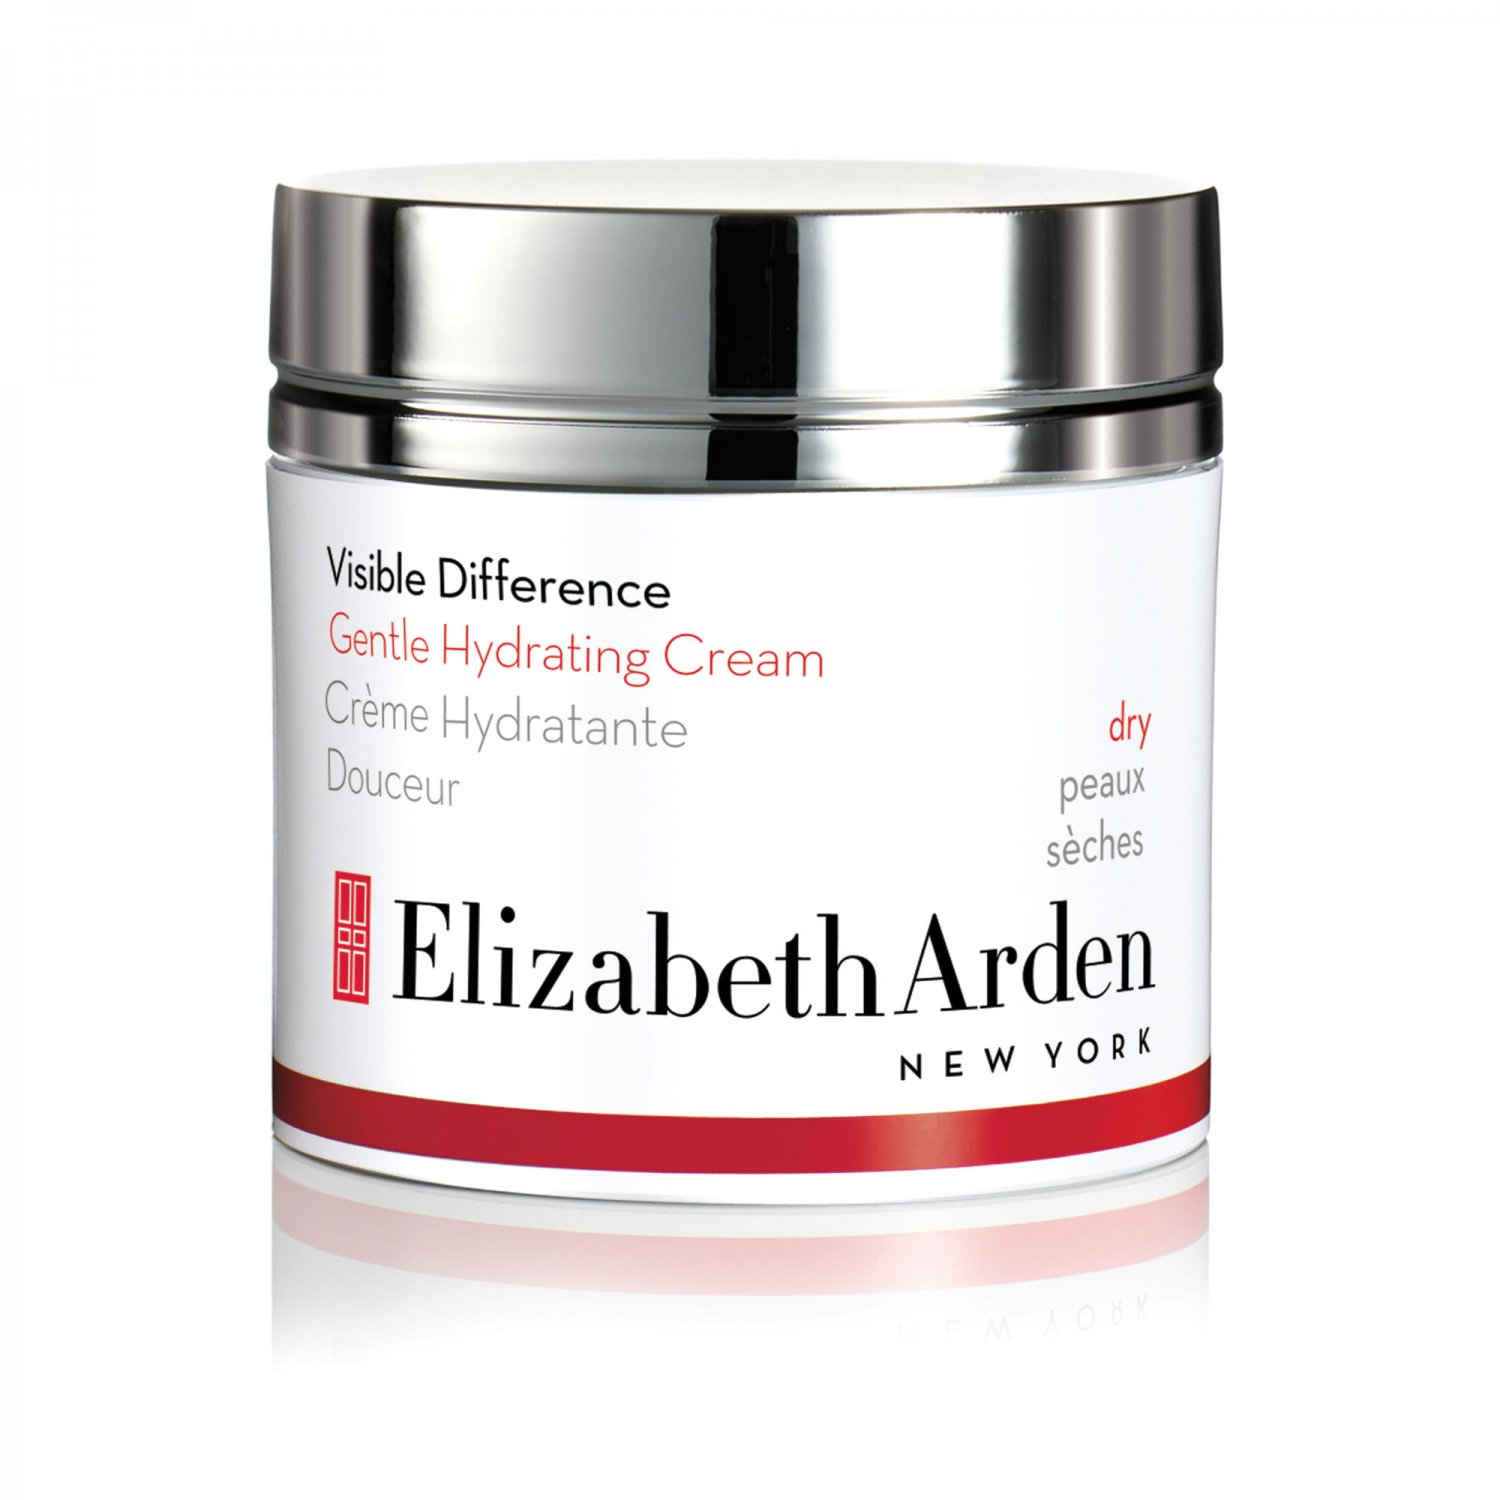 Elizabeth Arden Visible Difference Gentle Hydrating Cream SPF 15 (Dry Skin) - 50ml/1.7oz